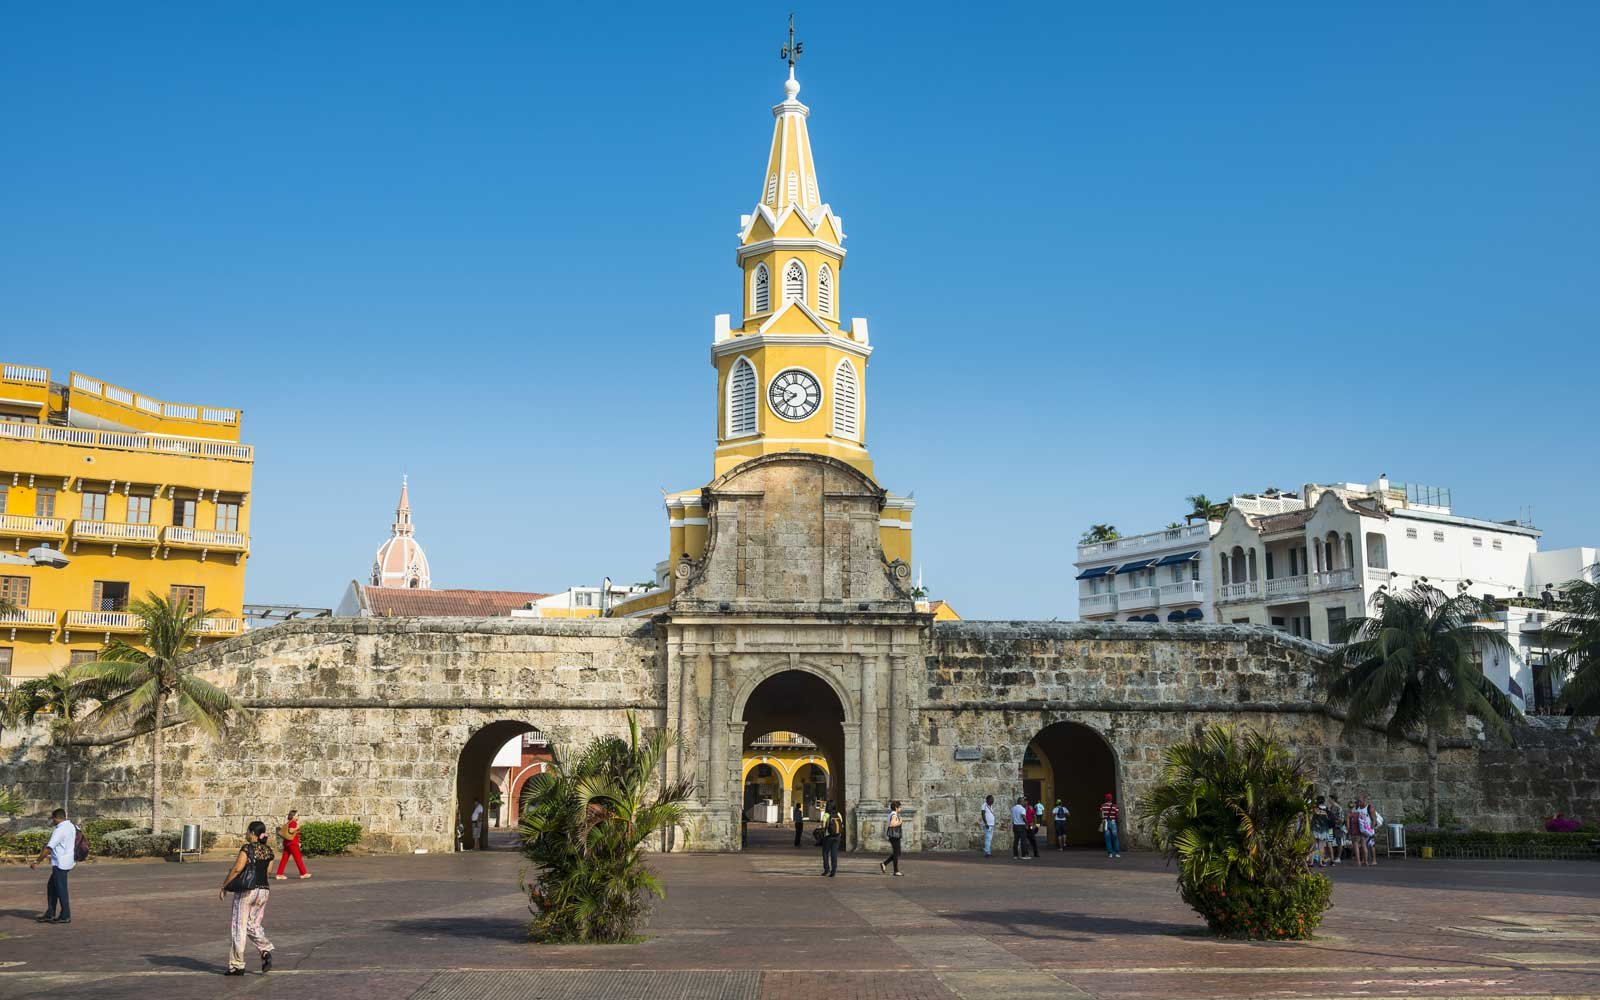 Torre del Reloj Publico (Public Clock Tower), UNESCO World Heritage Site, Cartagena, Colombia